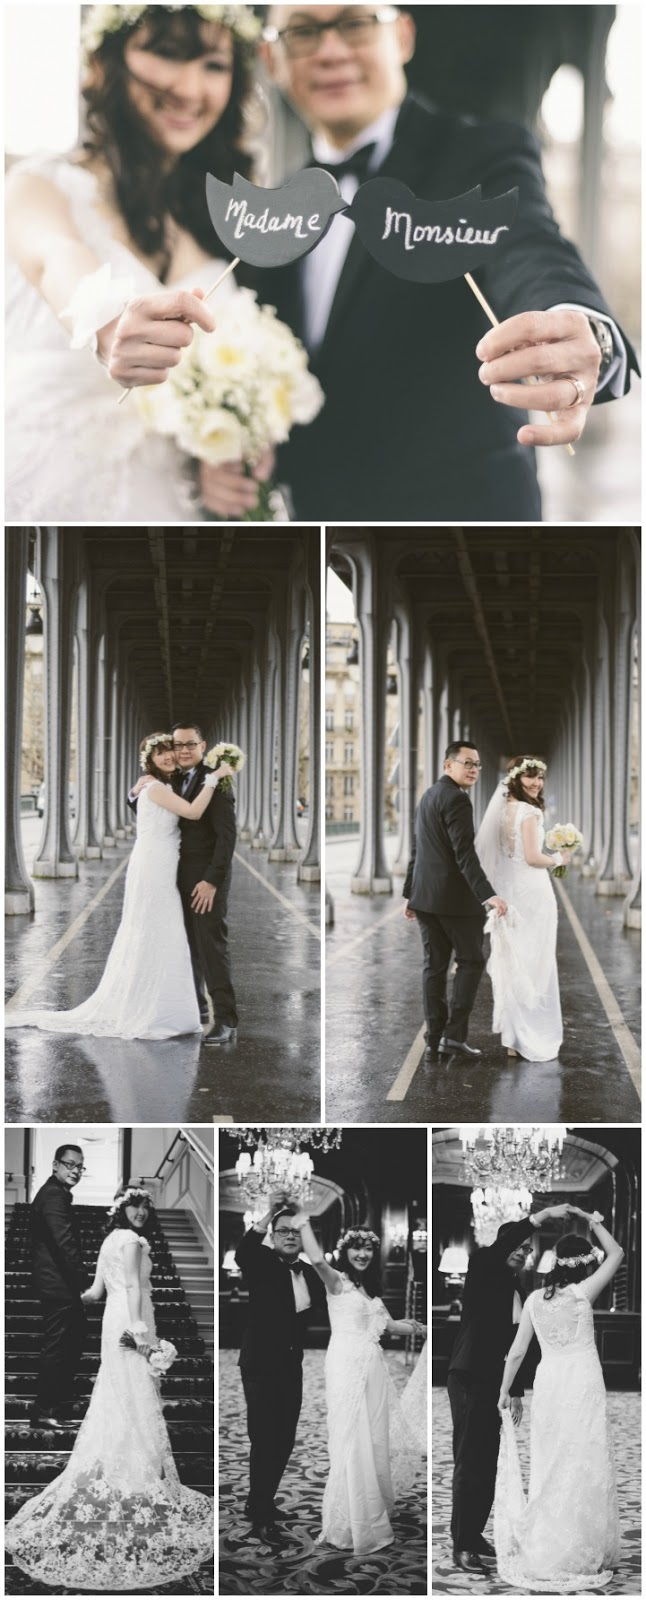 Paris PreWedding Photo